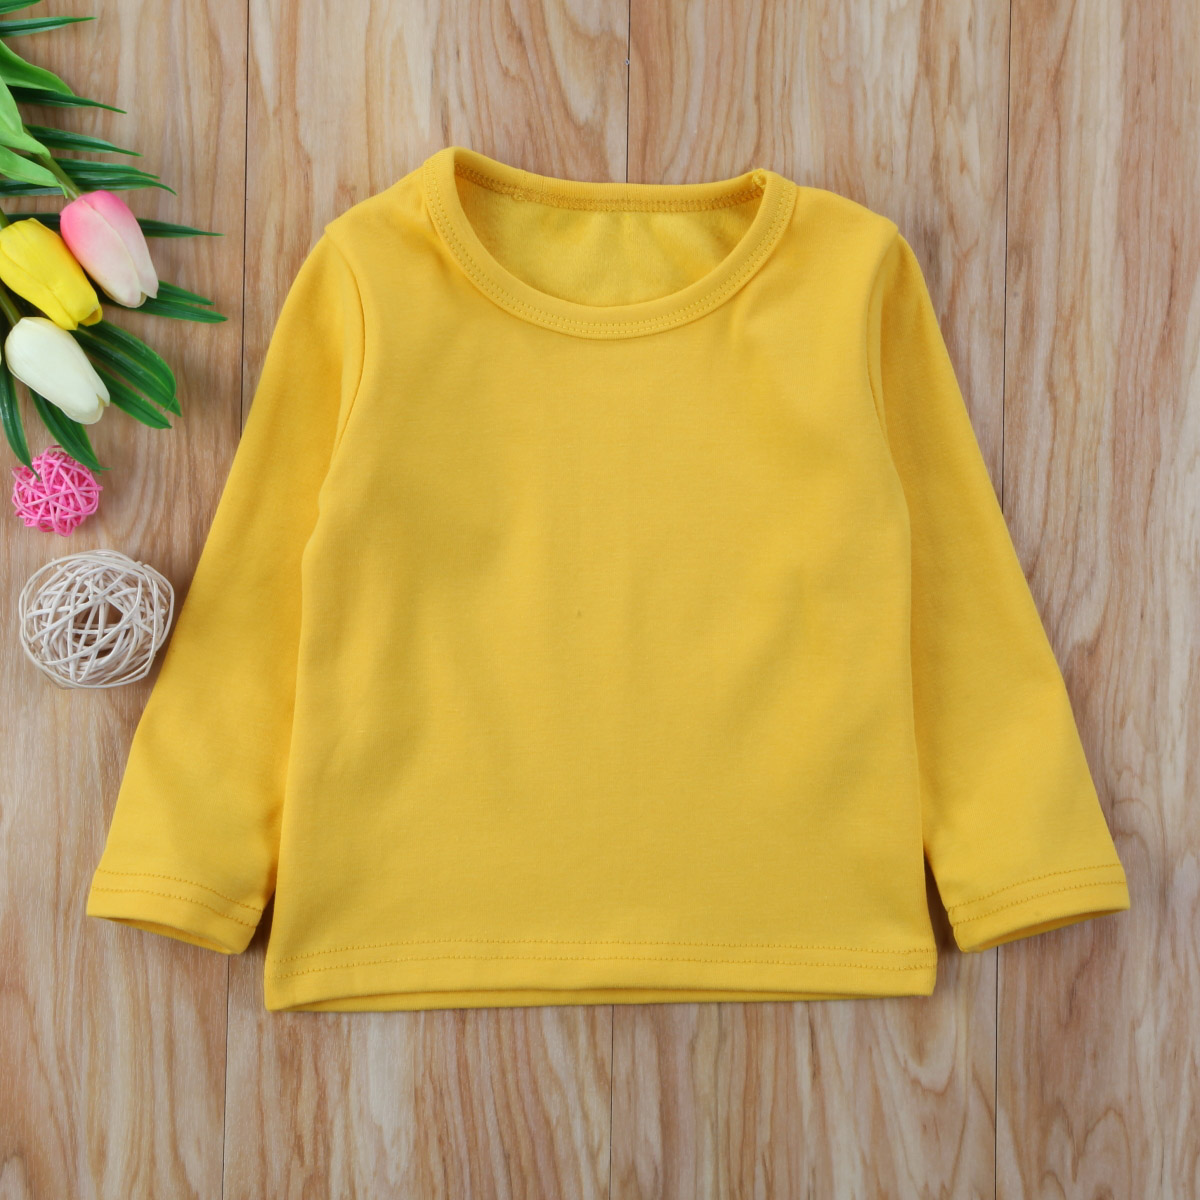 Toddler Infant Kids Baby Boys Girls Cotton Warm Clothes Tops Outwears 2